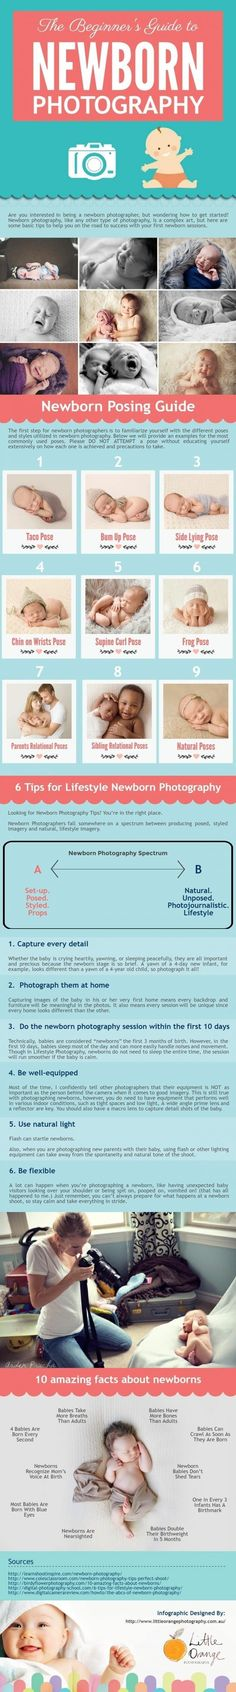 The Beginner's Guide to Newborn Photography. | Austlen Baby Co. #ParentingPhotography